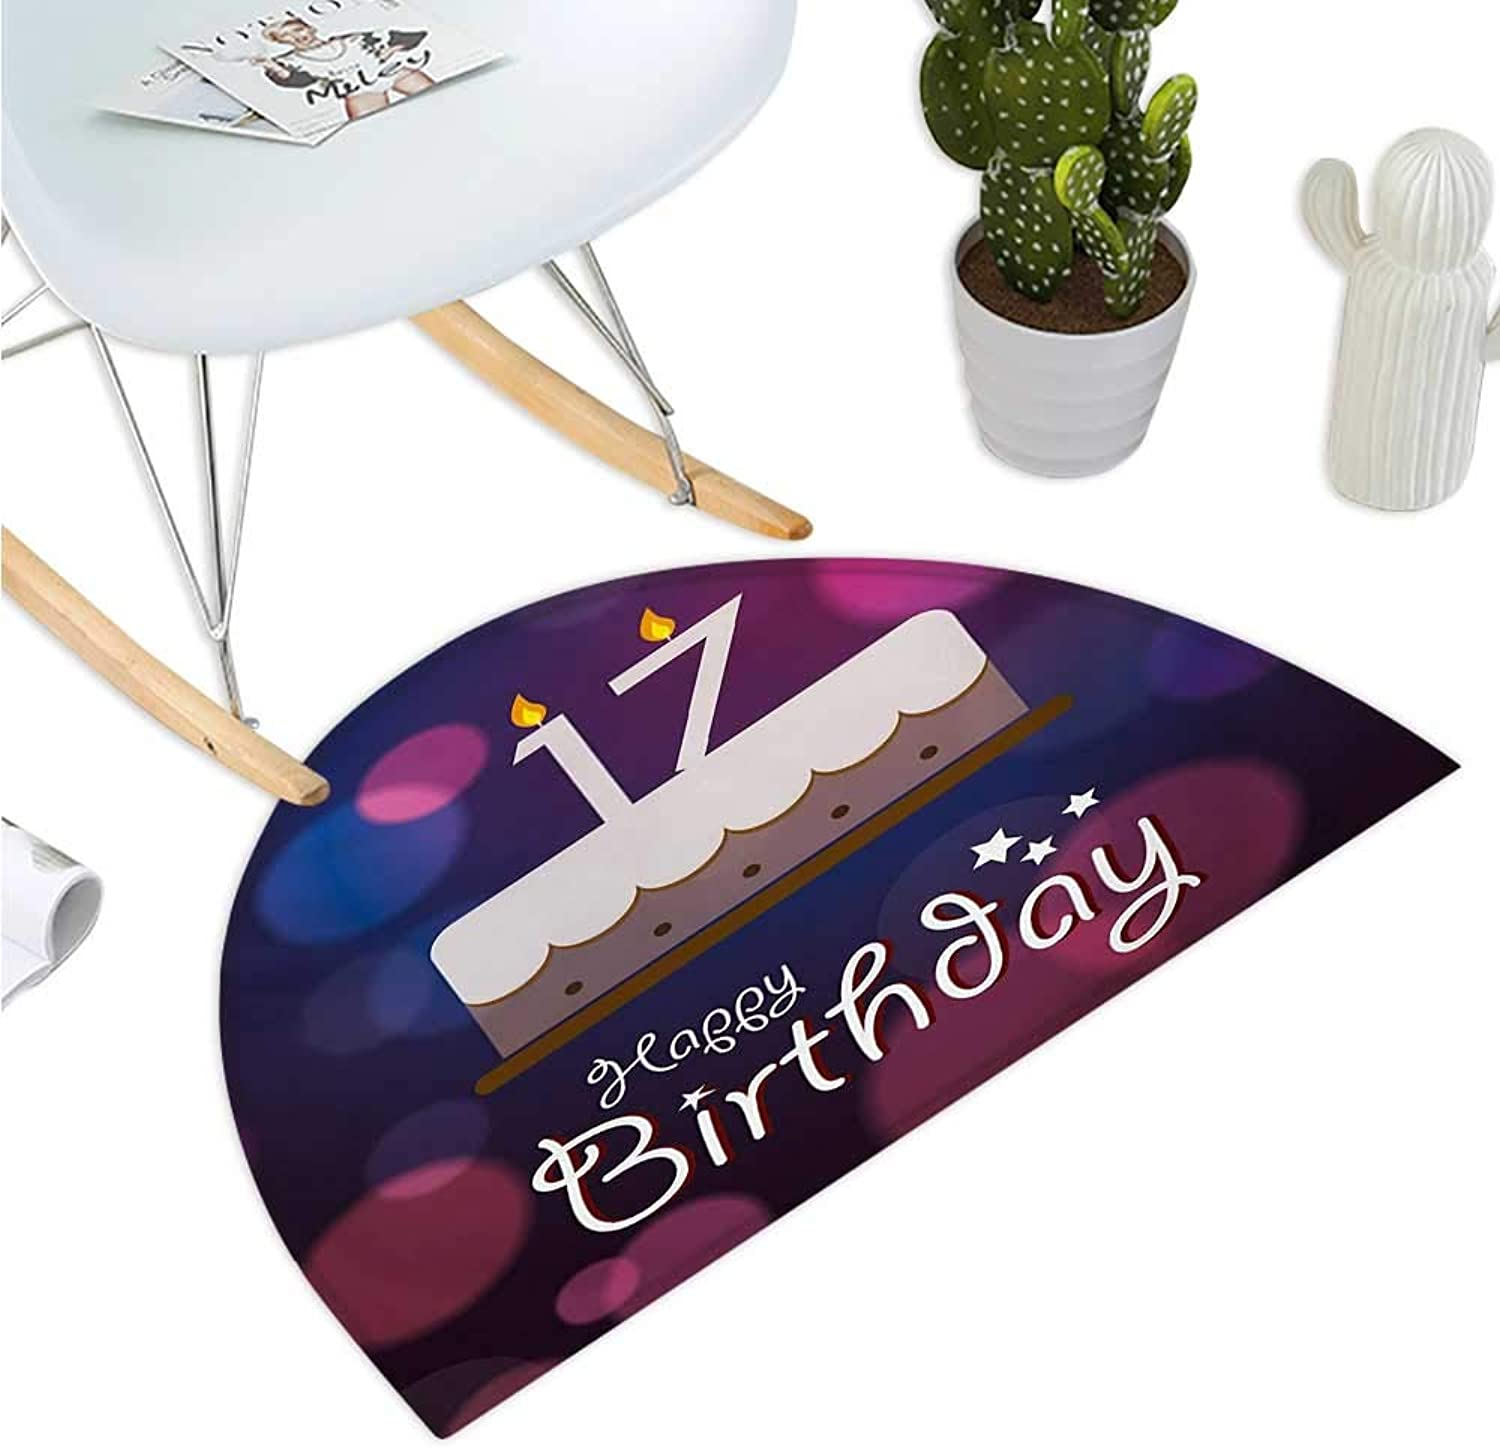 17th Birthday Semicircular Cushion Seventeen Party Cake with Abstract Style Circles Artistic Print Entry Door Mat H 39.3  xD 59  purplec Purple and Pink